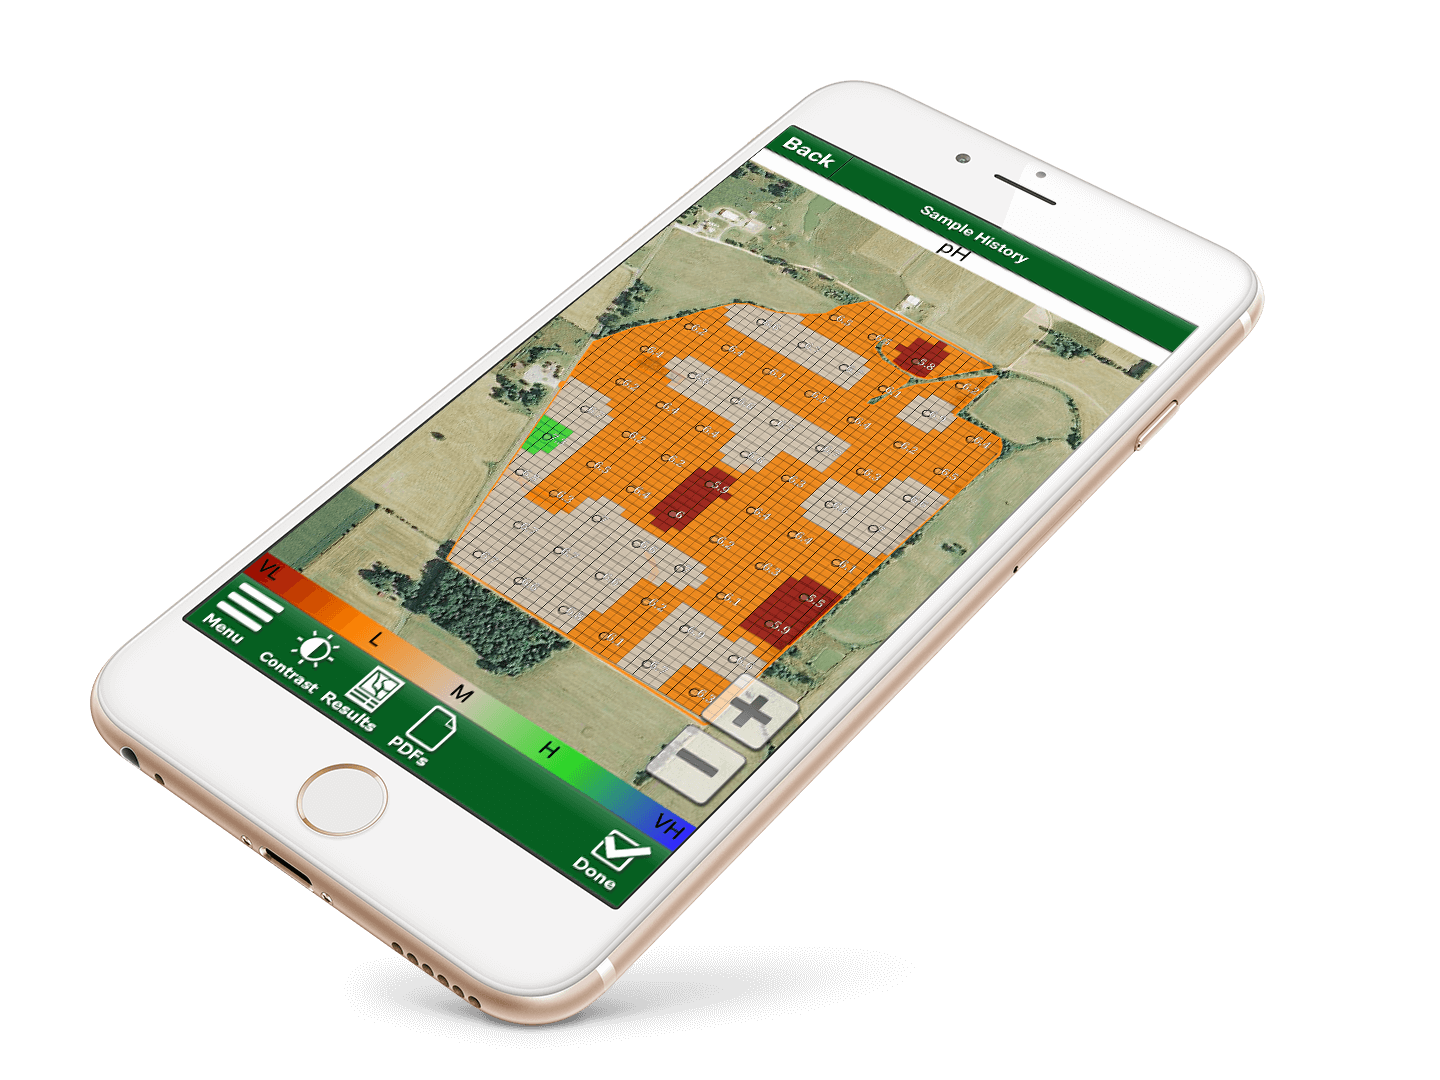 Soil Test Pro lab results now integrated with the John Deere Operations center - displayed on mobile